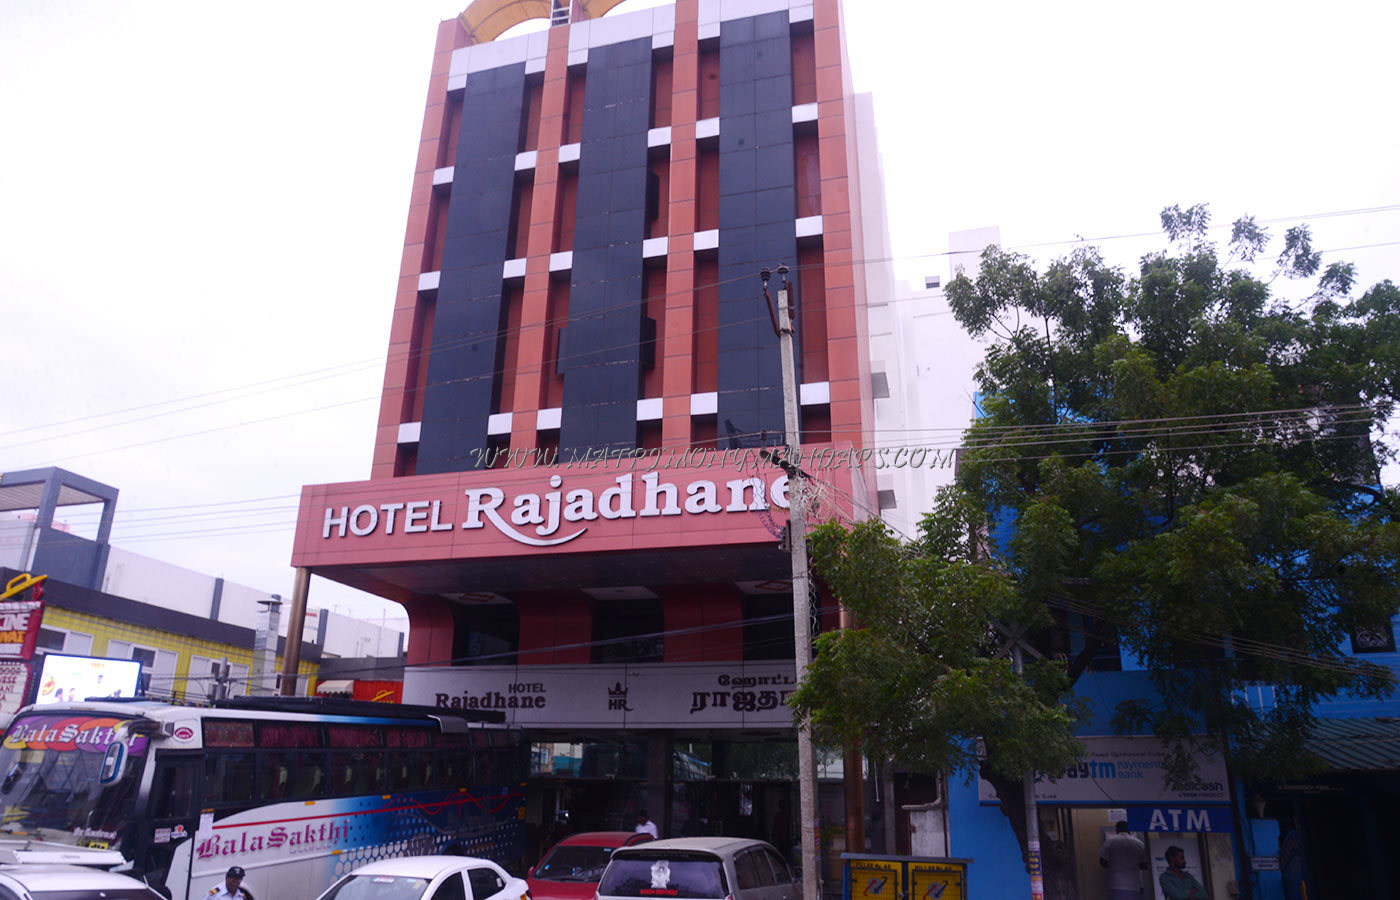 Find the availability of the Hotel Rajadhane Rani Hall (A/C) in KK Nagar, Madurai and avail special offers